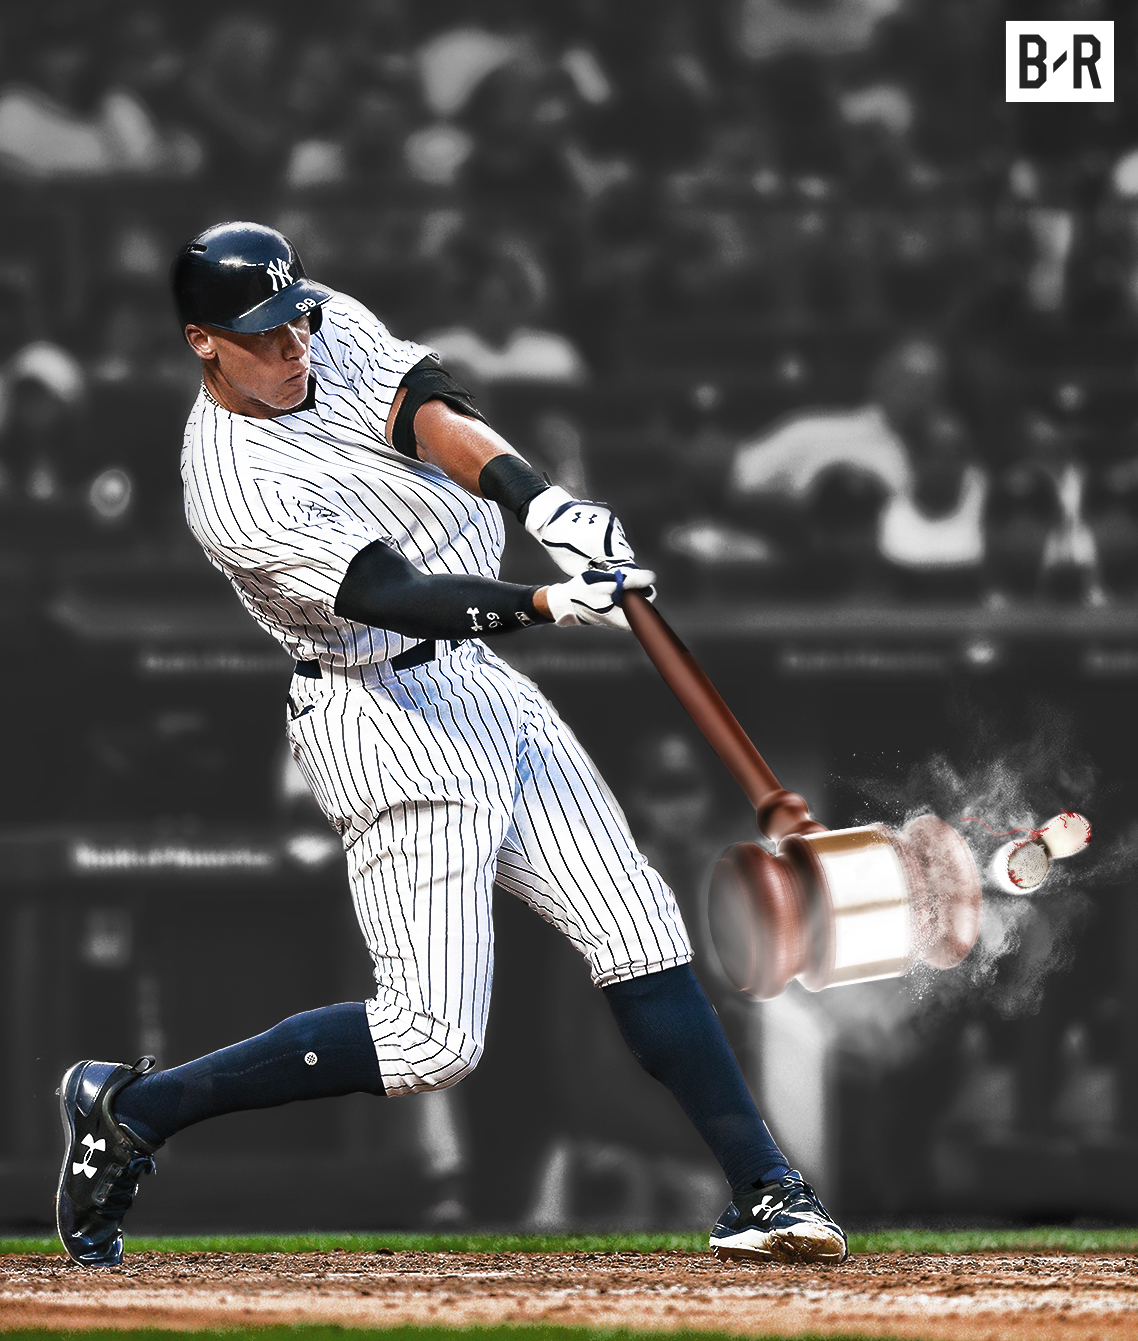 2017_7_6_AaronJudge2.jpg